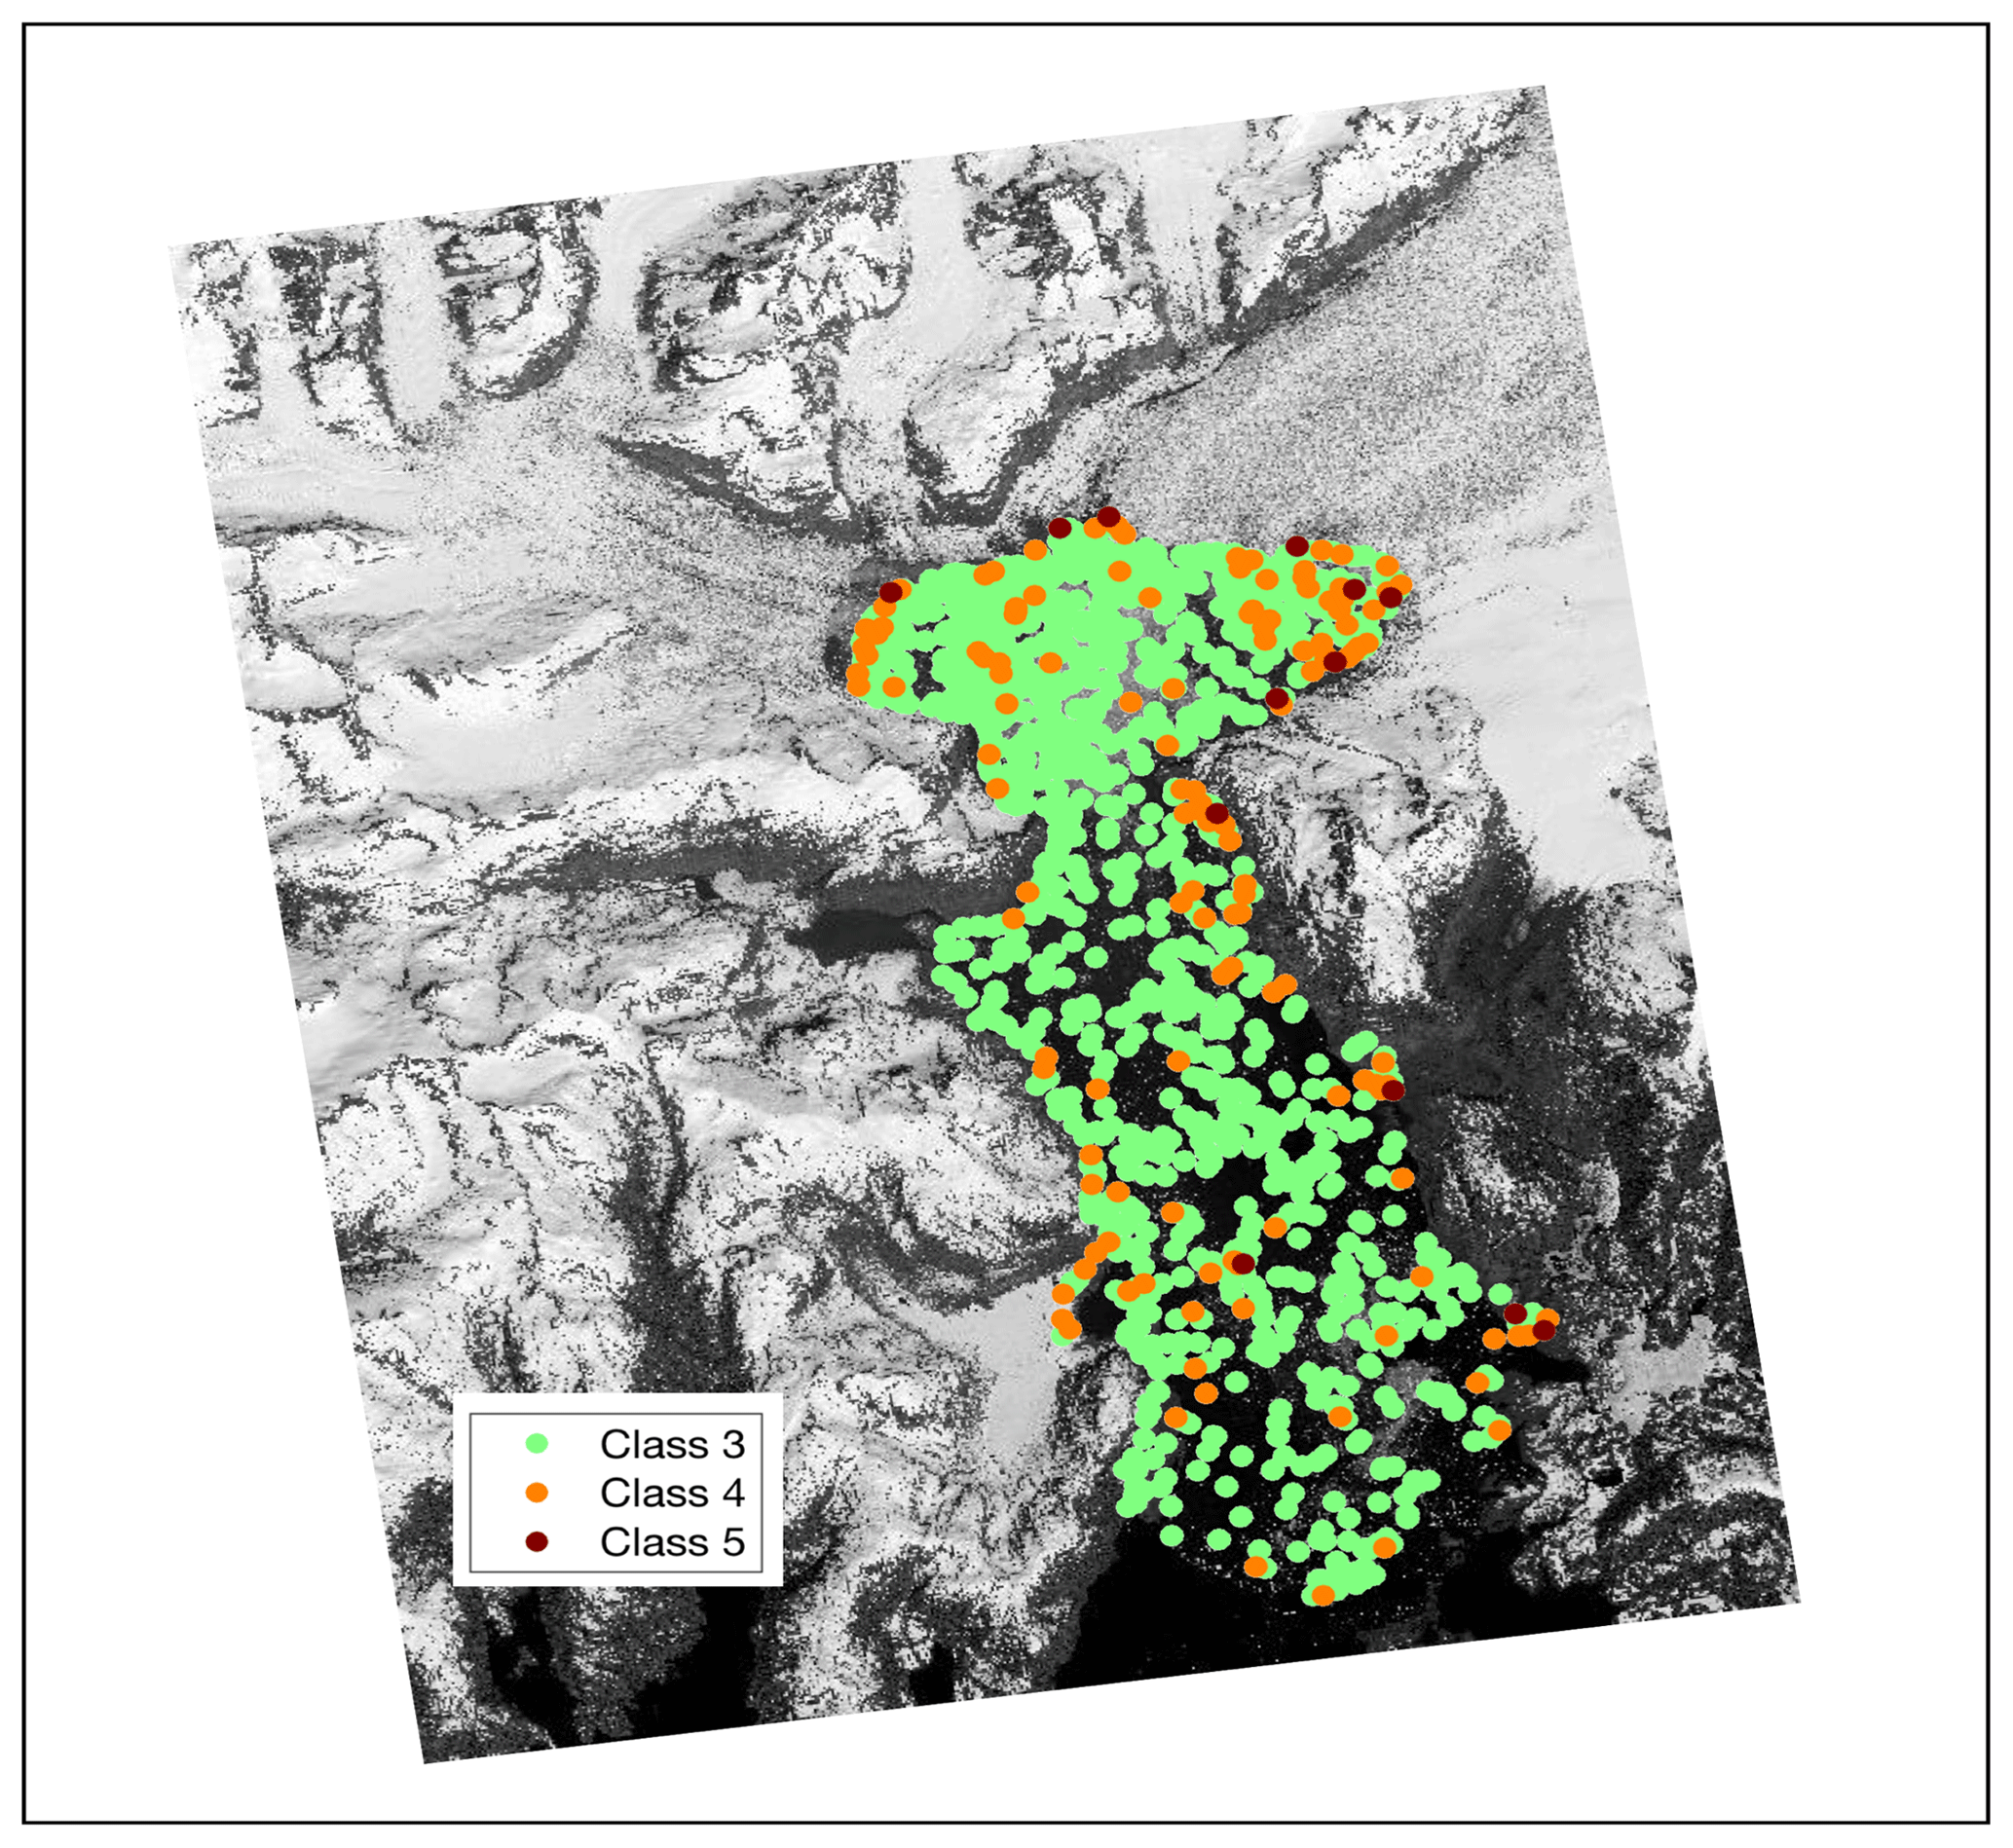 TC - Spatiotemporal distributions of icebergs in a temperate fjord